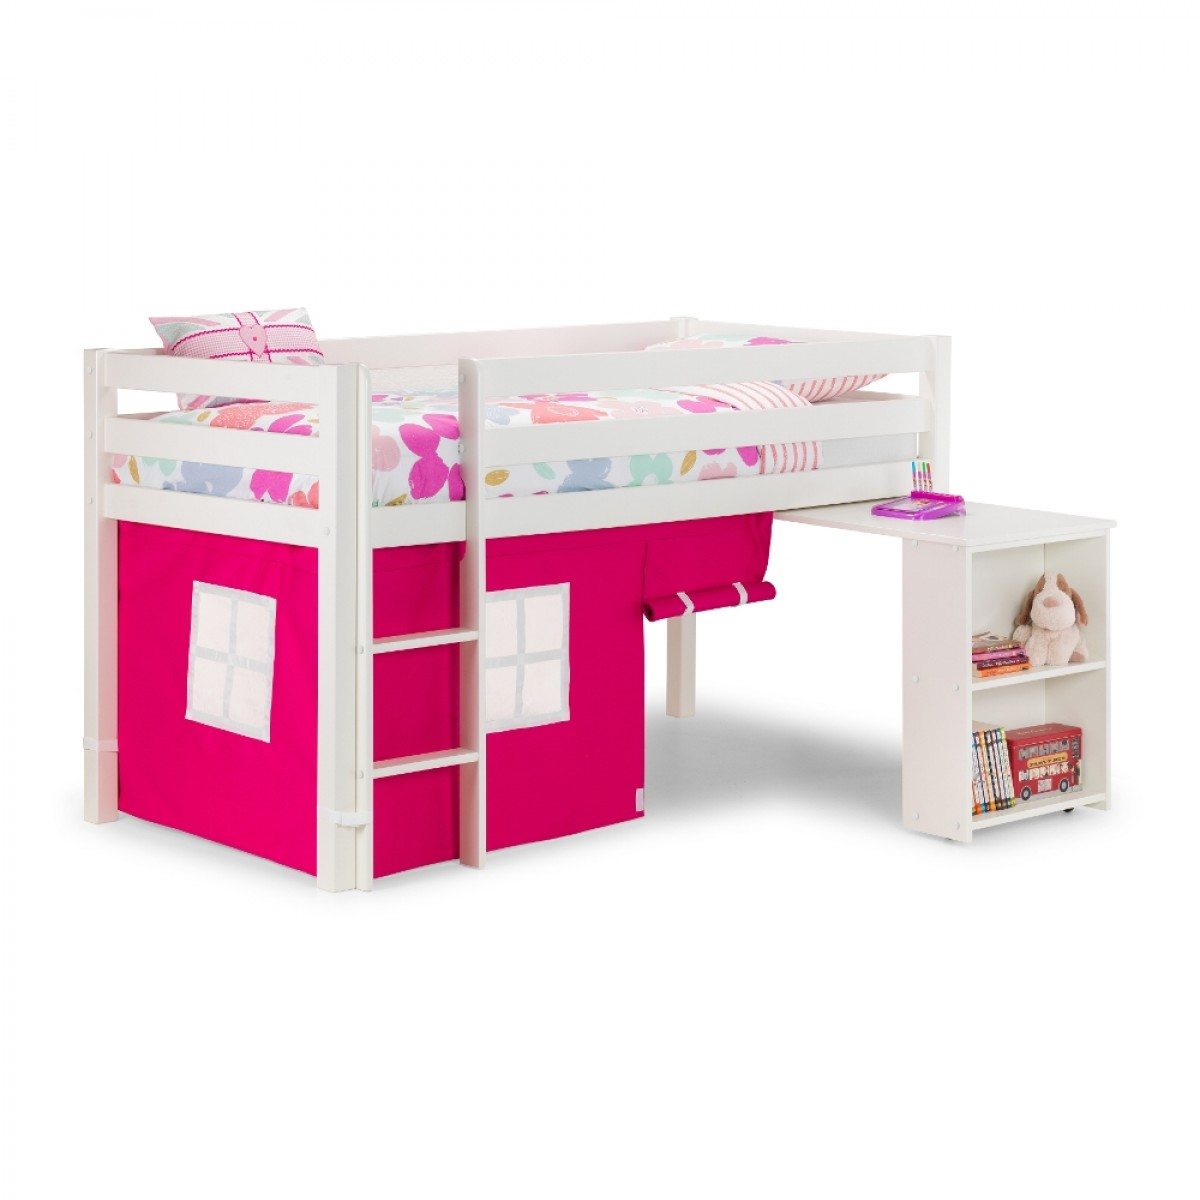 Wendy White Wooden Mid Sleeper With Pink Tent